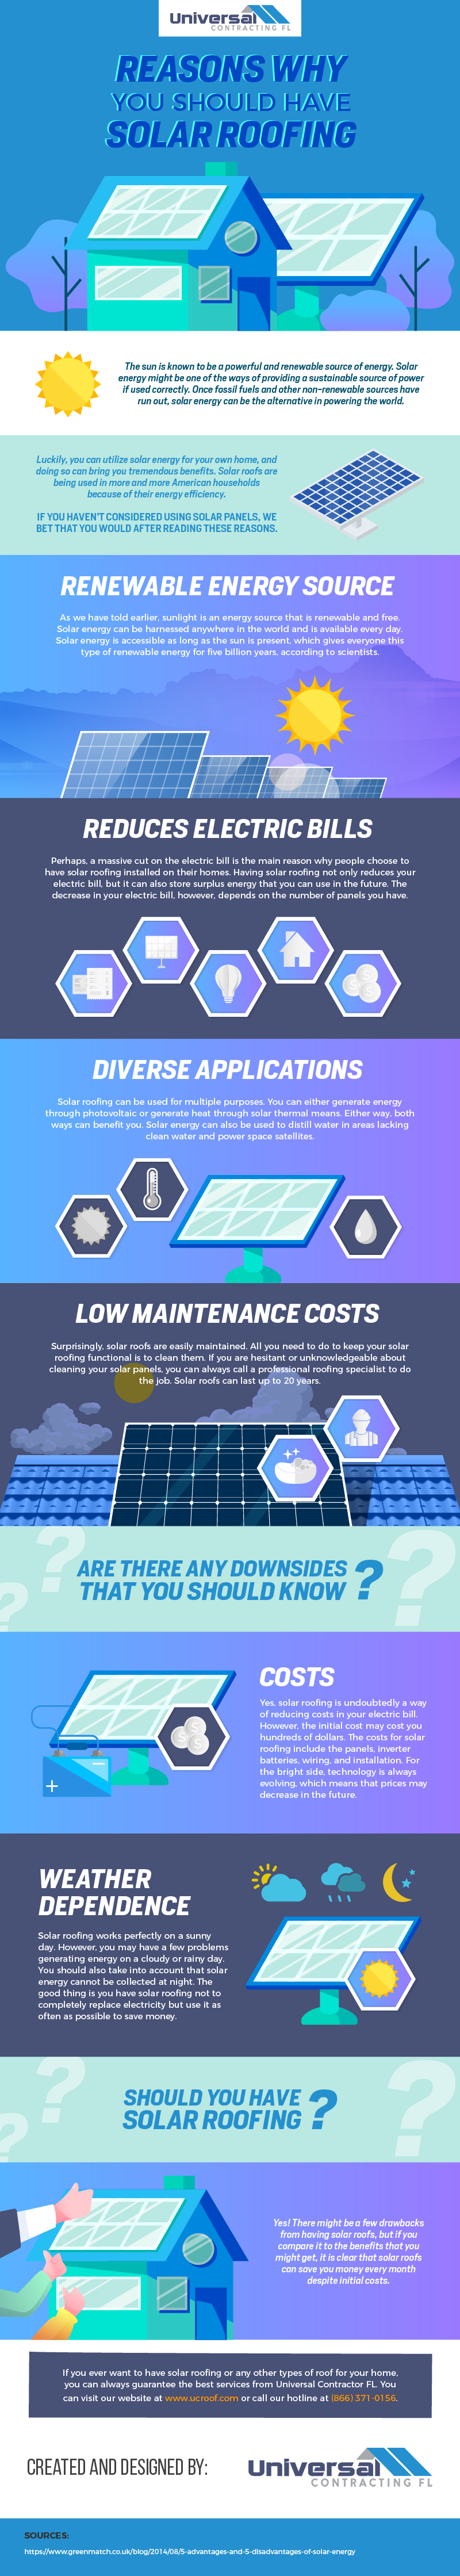 Reasons why you should have solar roofing - Infographic